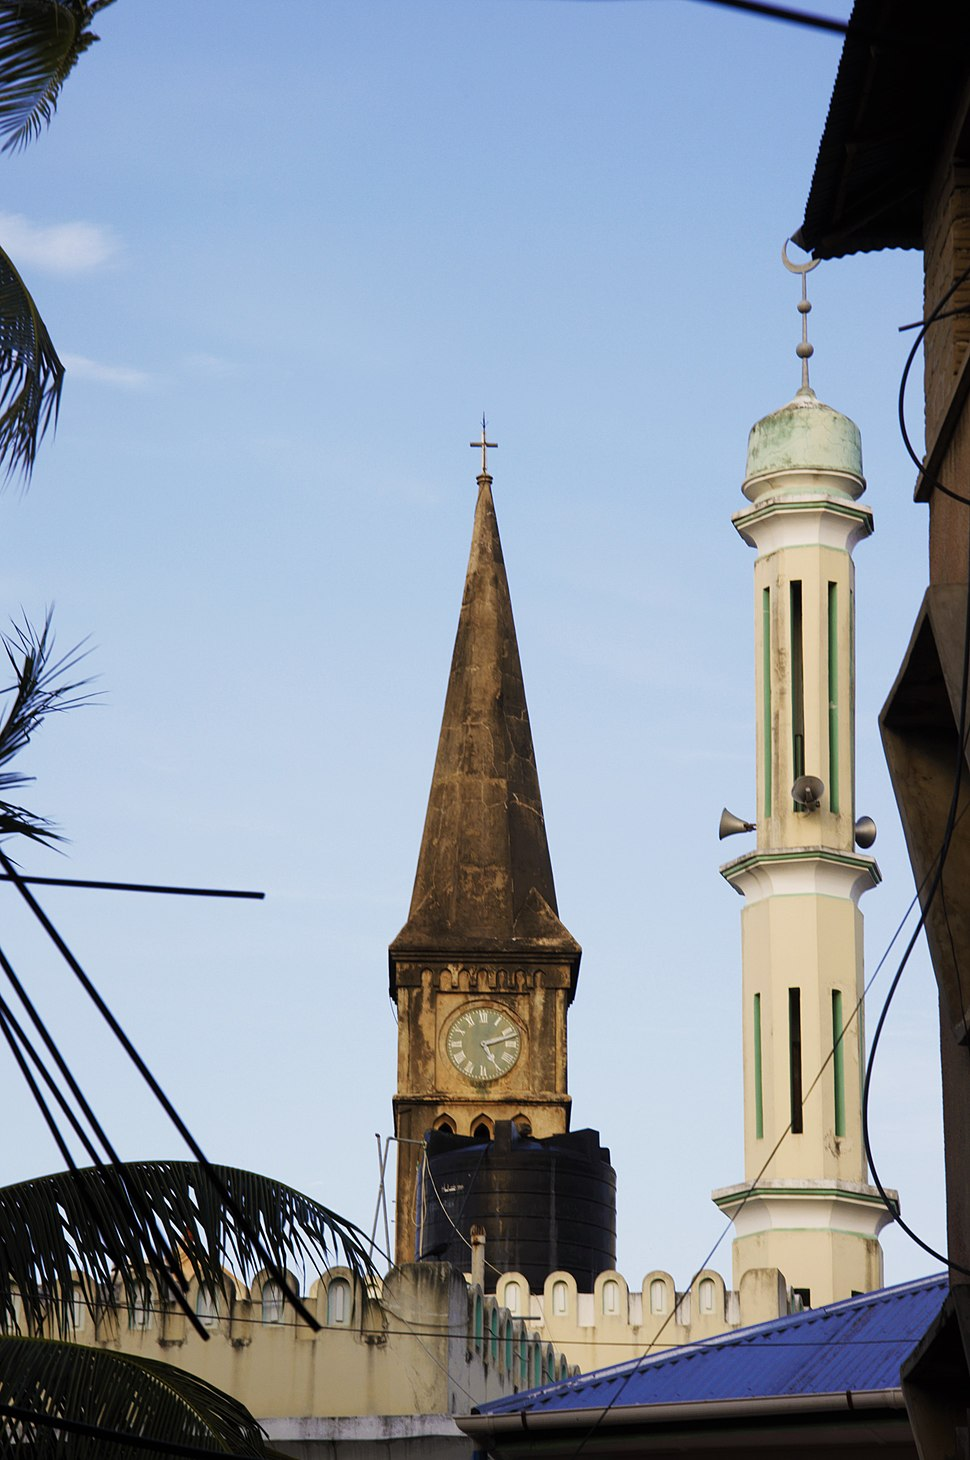 The mosque and church are located closely in the stone city of Zanzibar